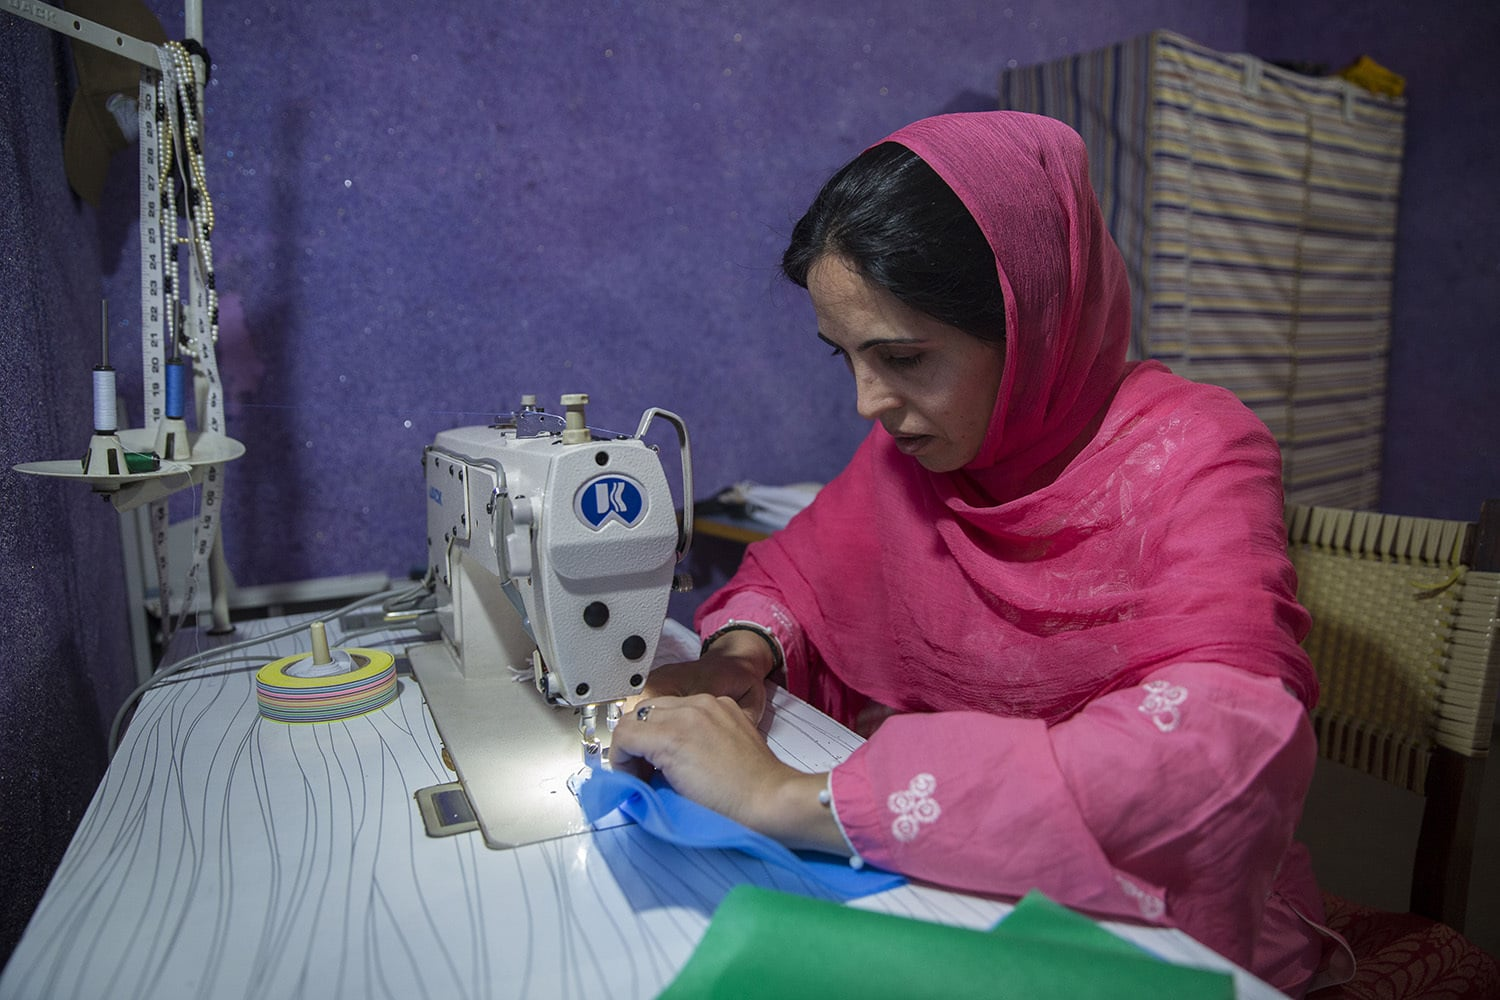 33-year-old Nusrat Bibi is one the two breadwinners in a family of seven. She had to quit her education once her father got ill and had to learn how to stitch to earn an income. During the current outbreak, she is stitching face masks from her home for Hashoo Foundation, a non-profit organisation that teaches vocational and entrepreneurial skills to women in impoverished areas, May 18, 2020, in Rawalpindi.